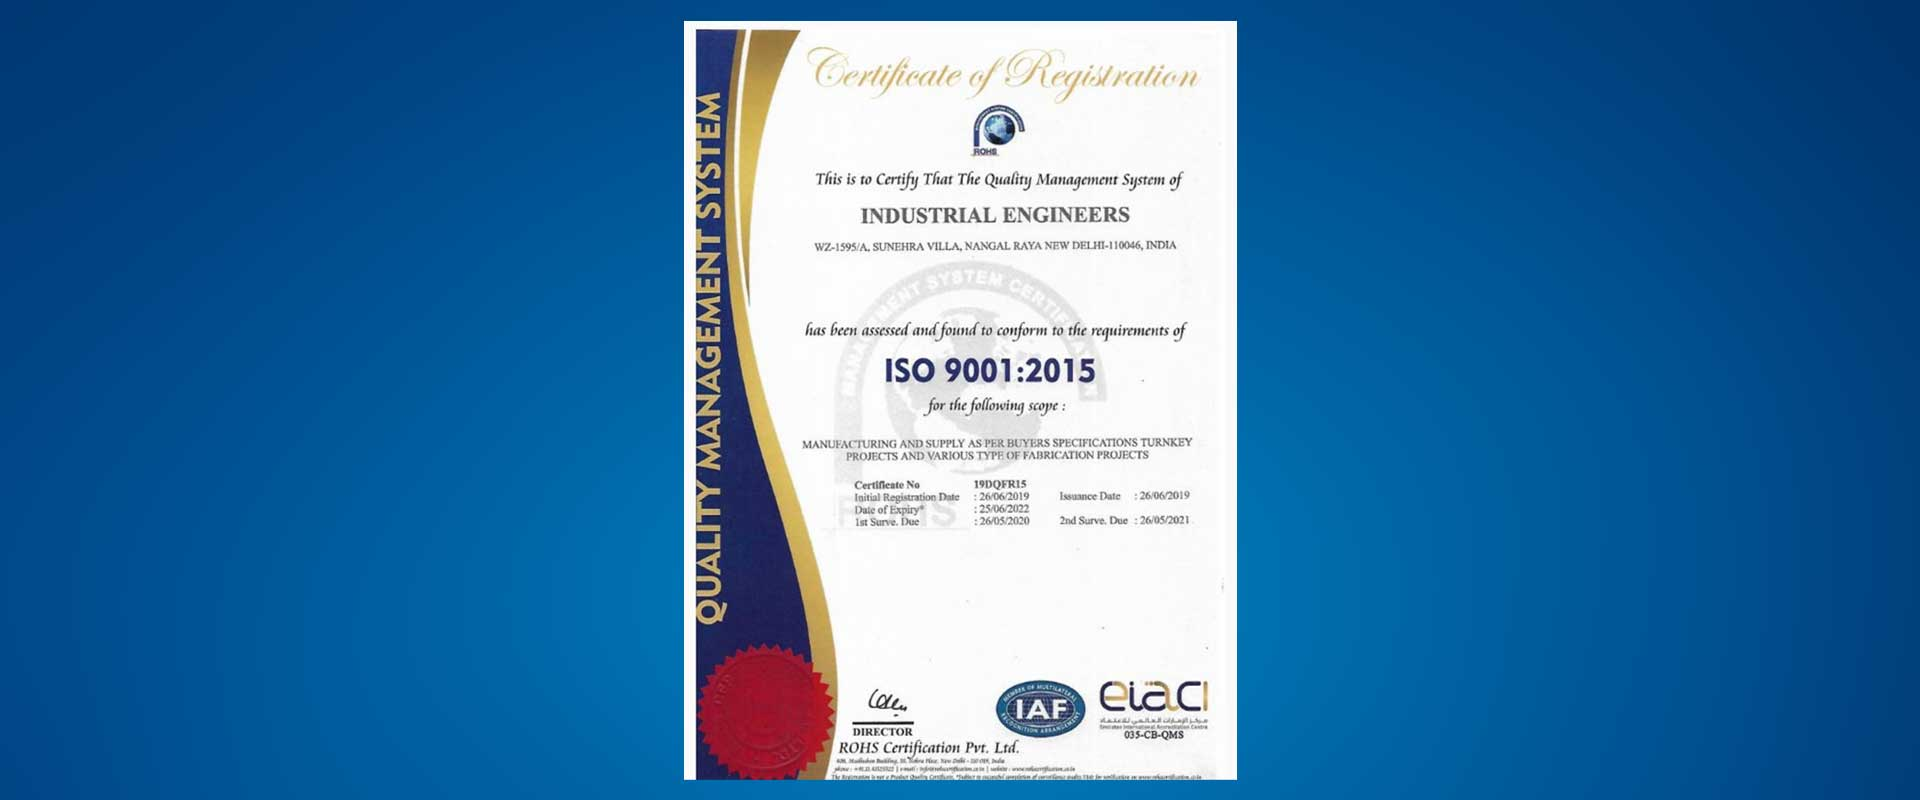 Industrial Engineers Certificate